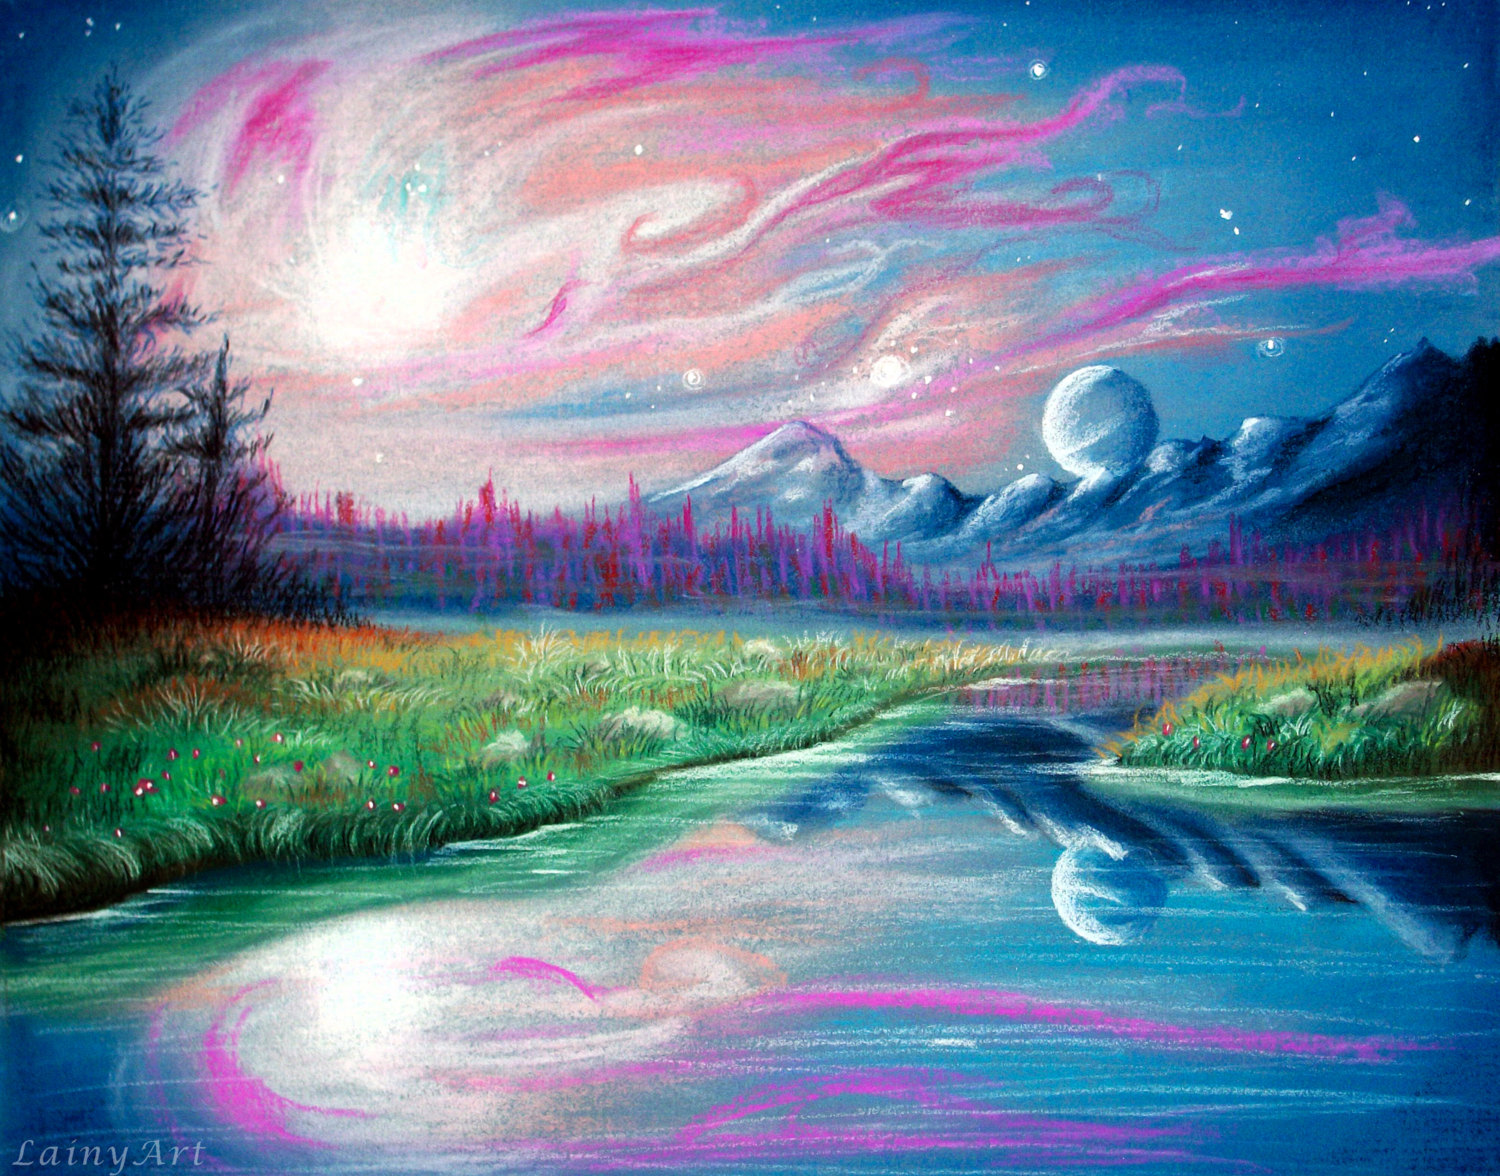 Drawn space art space Pastels landscape Space CUSTOM 8x10